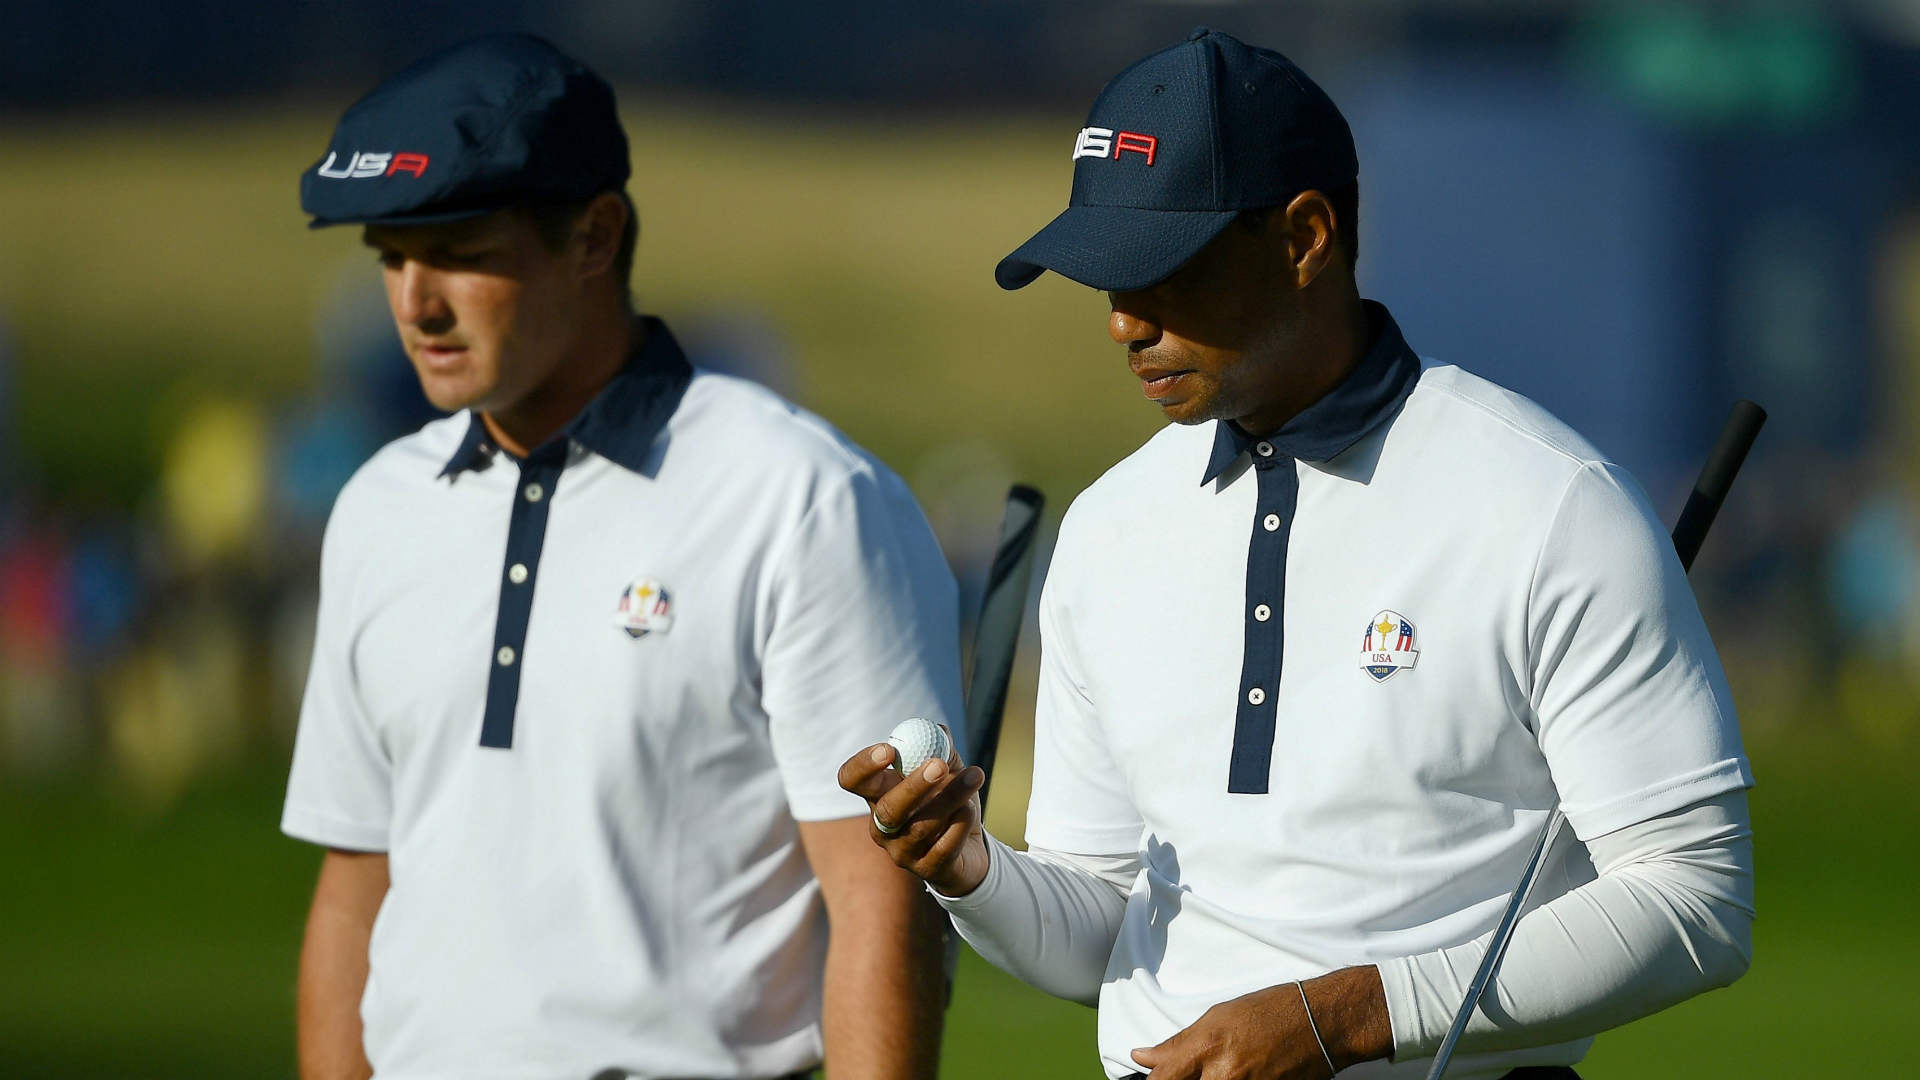 Ryder Cup 2018: Team USA needs to 'make some magic' Sunday, captain Jim Fury...